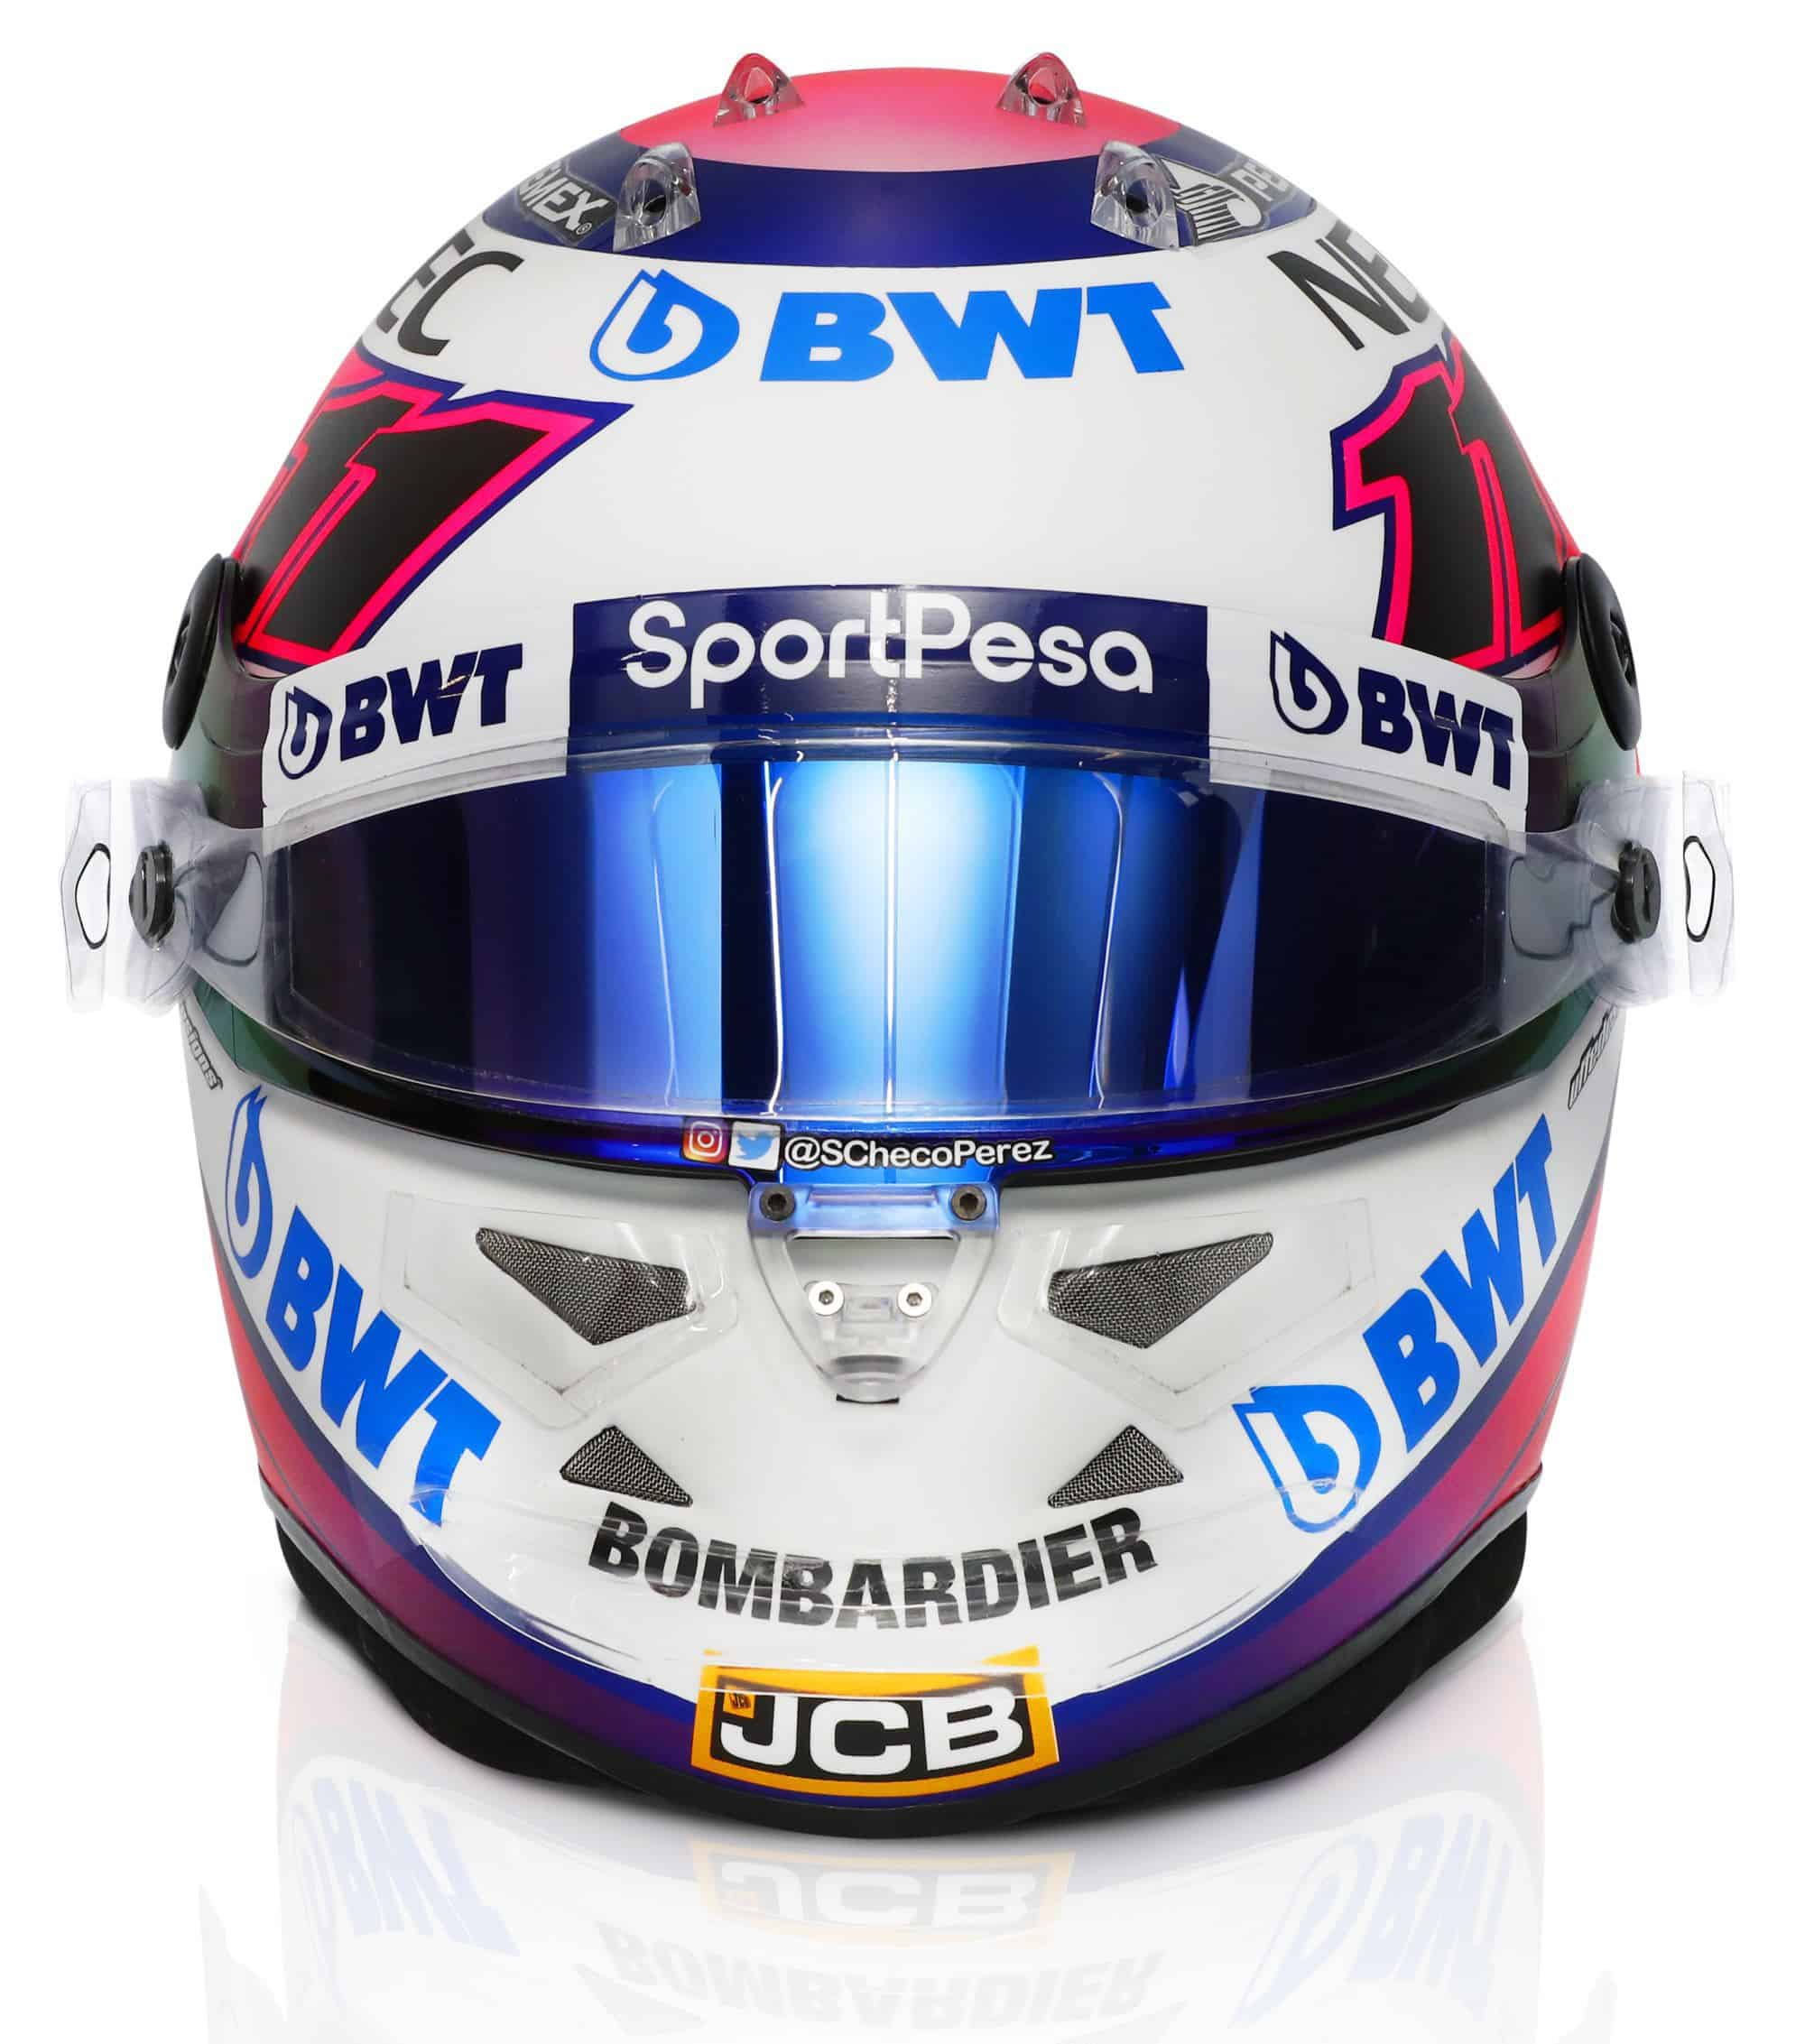 2019 Sport Pesa Racing Point Sergio Perez helmet front Photo Racing Point Edited by MAXF1net